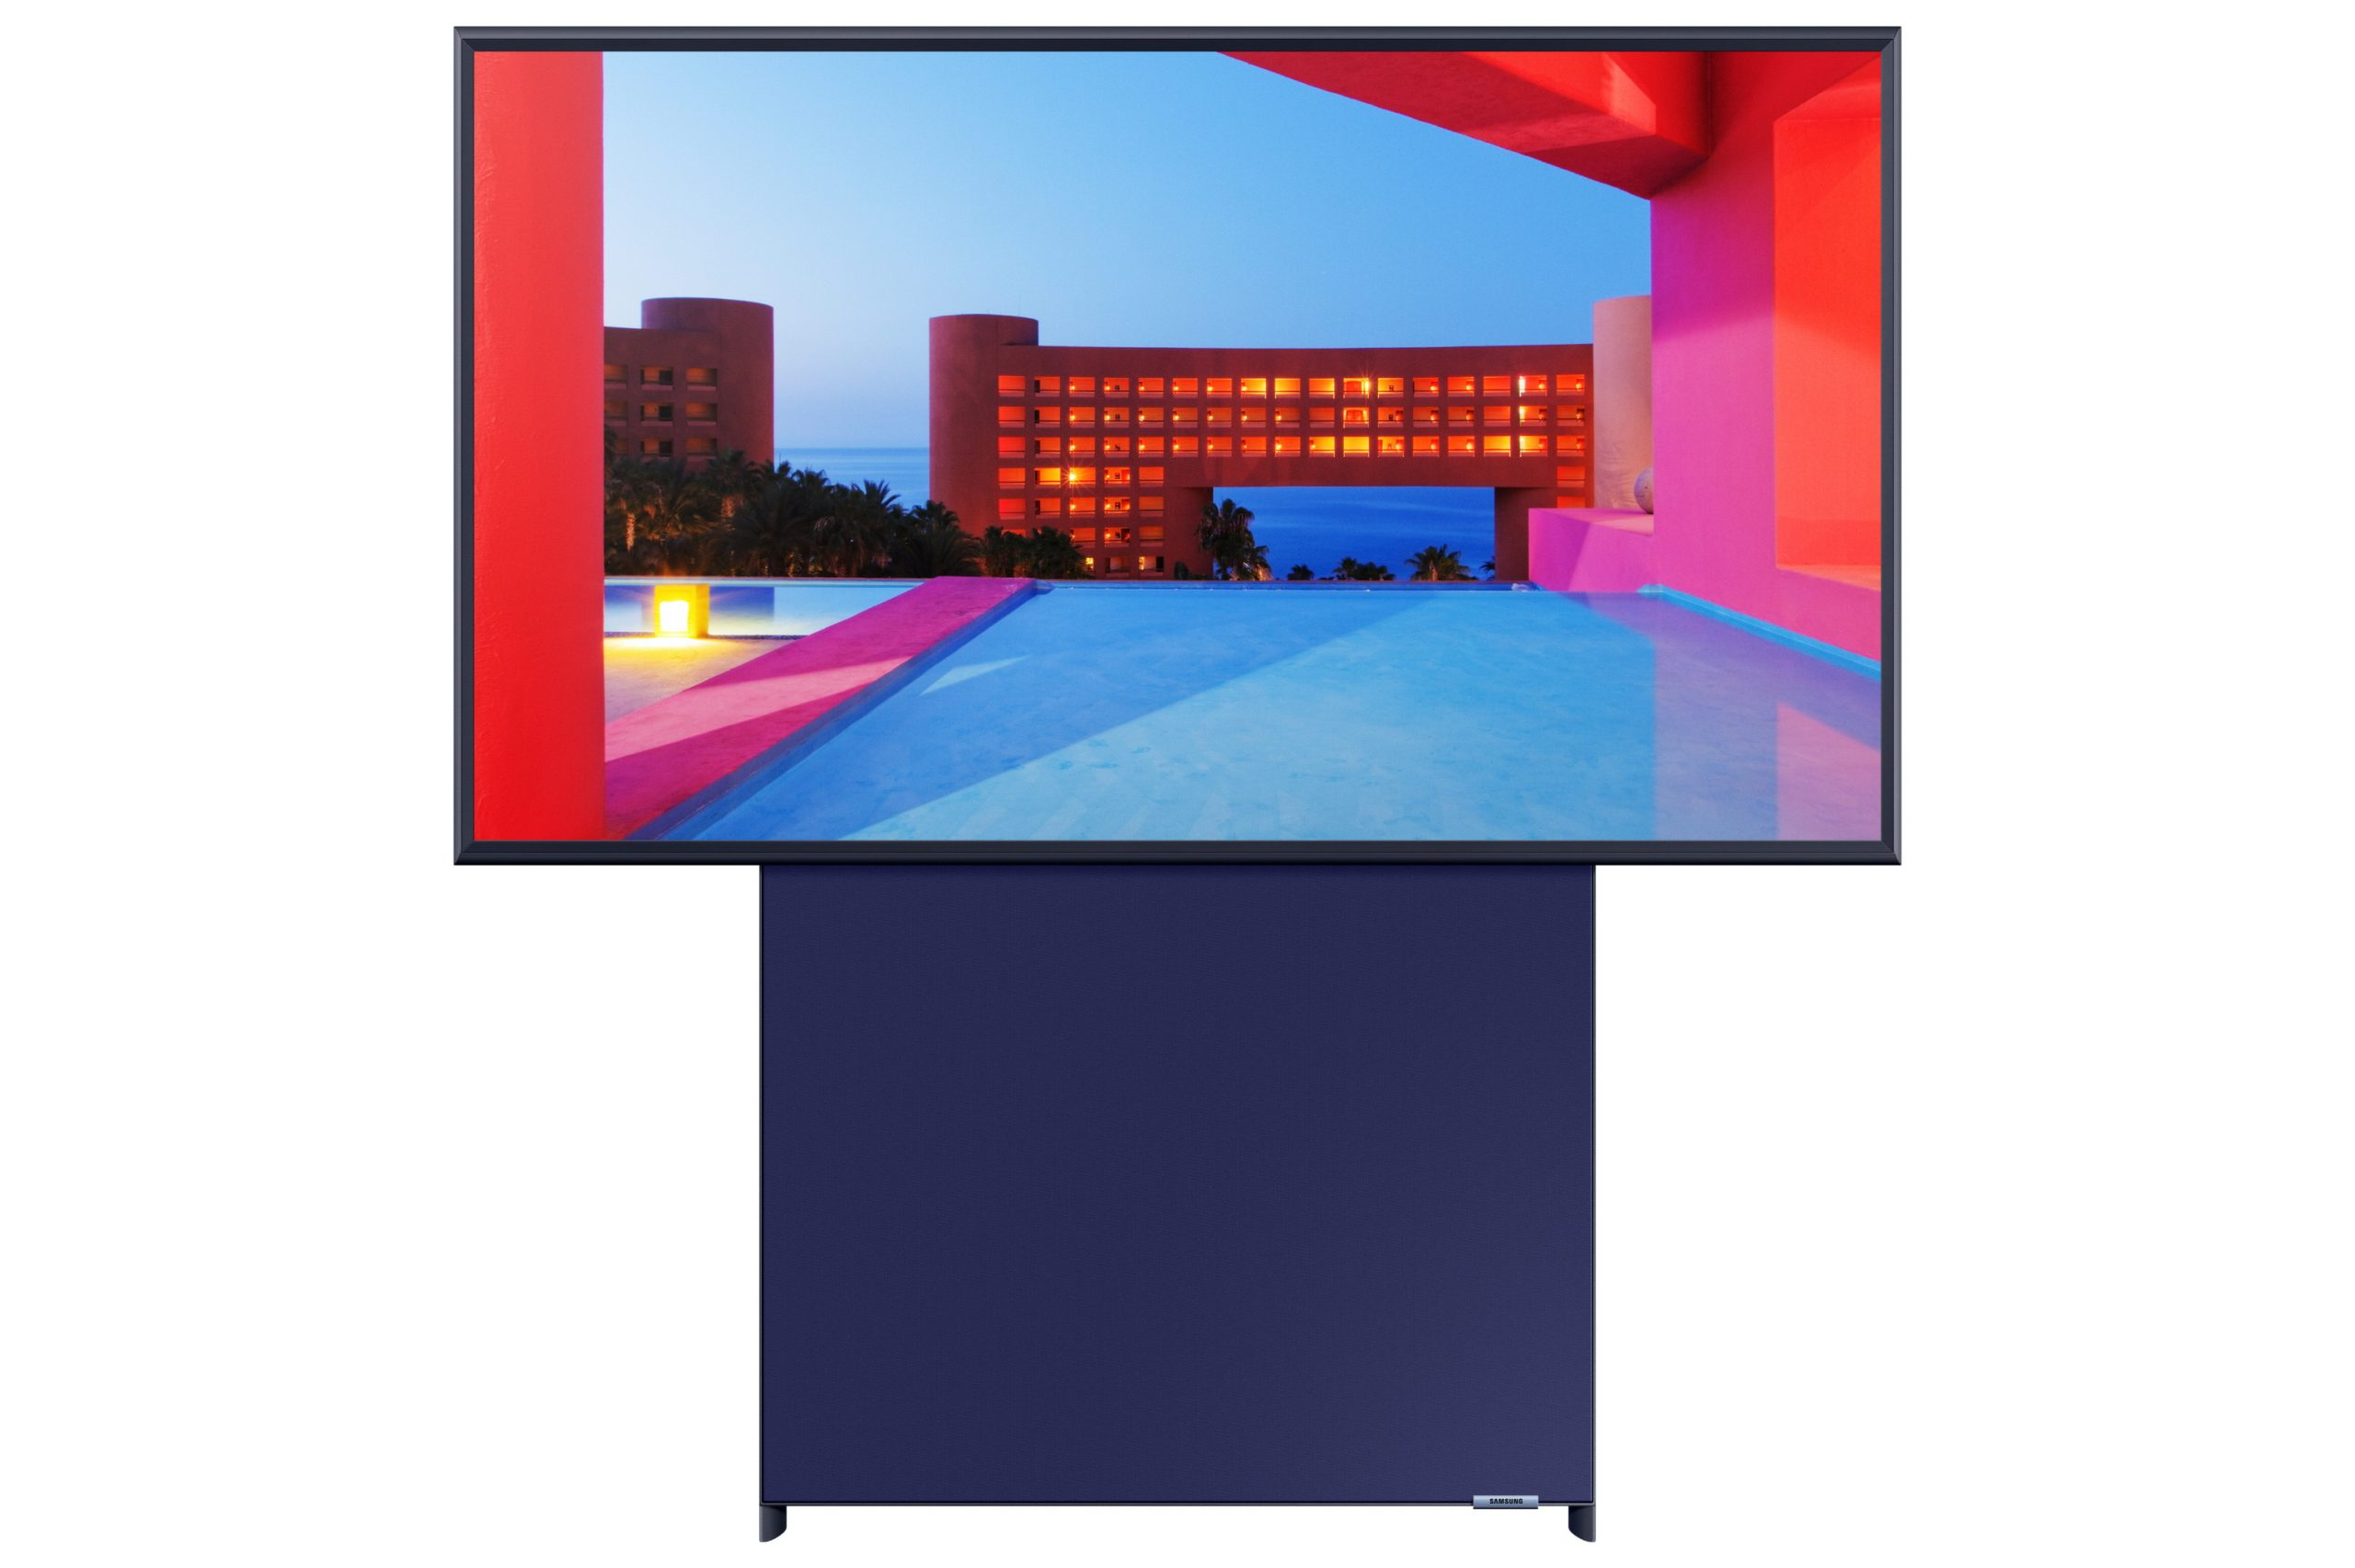 Samsung-Lifestyle-TV-The-Sero-03 (1)